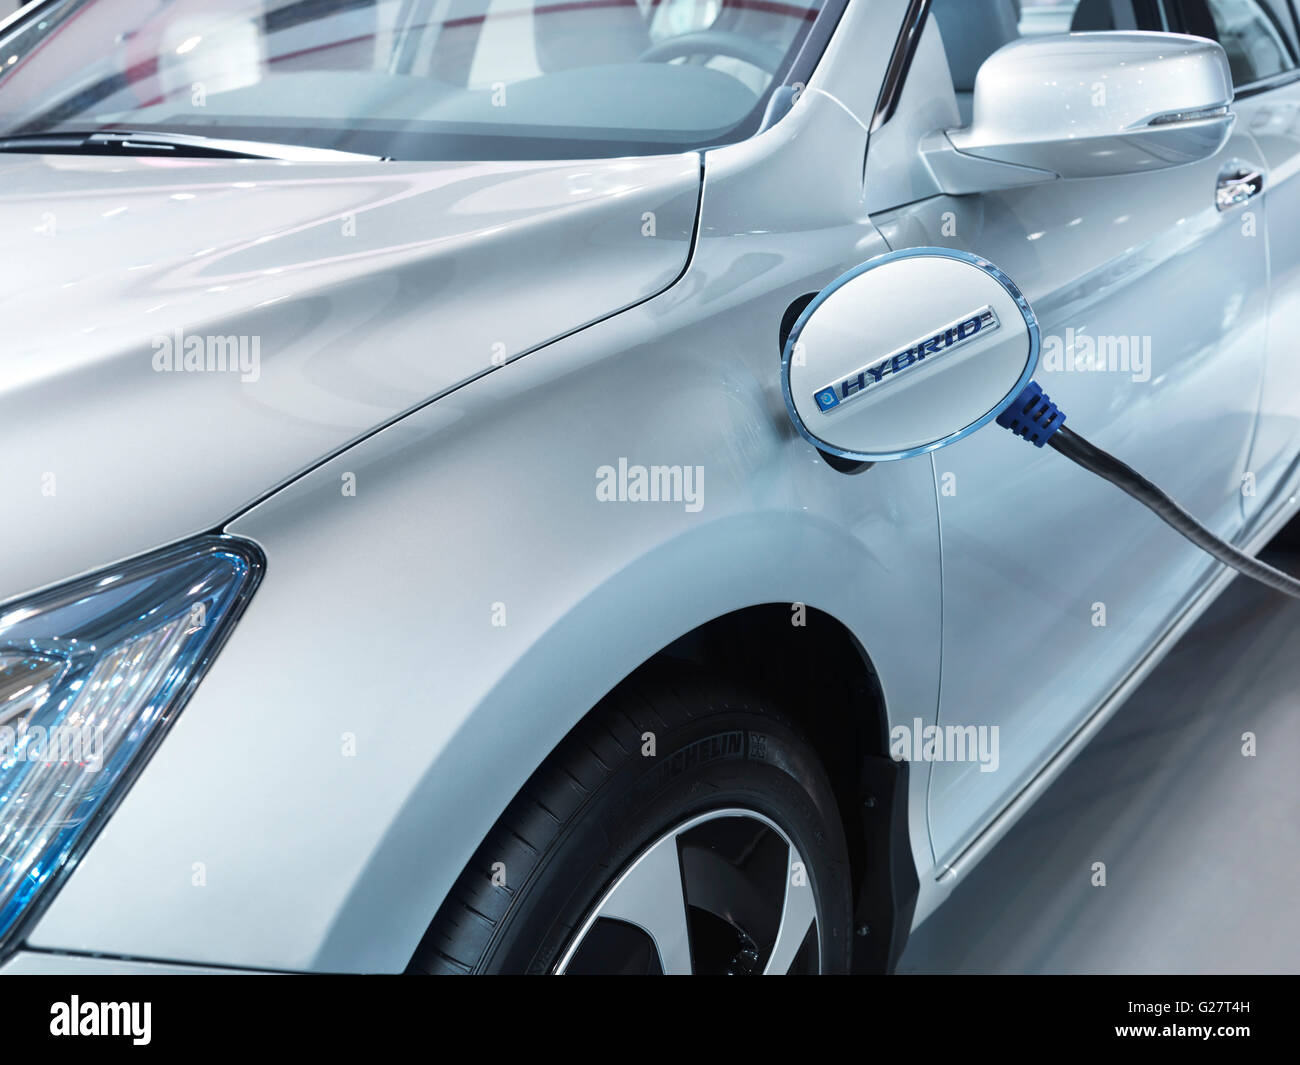 Plug-in hybrid electric vehicle Honda Accord recharging batteries at a charging station - Stock Image